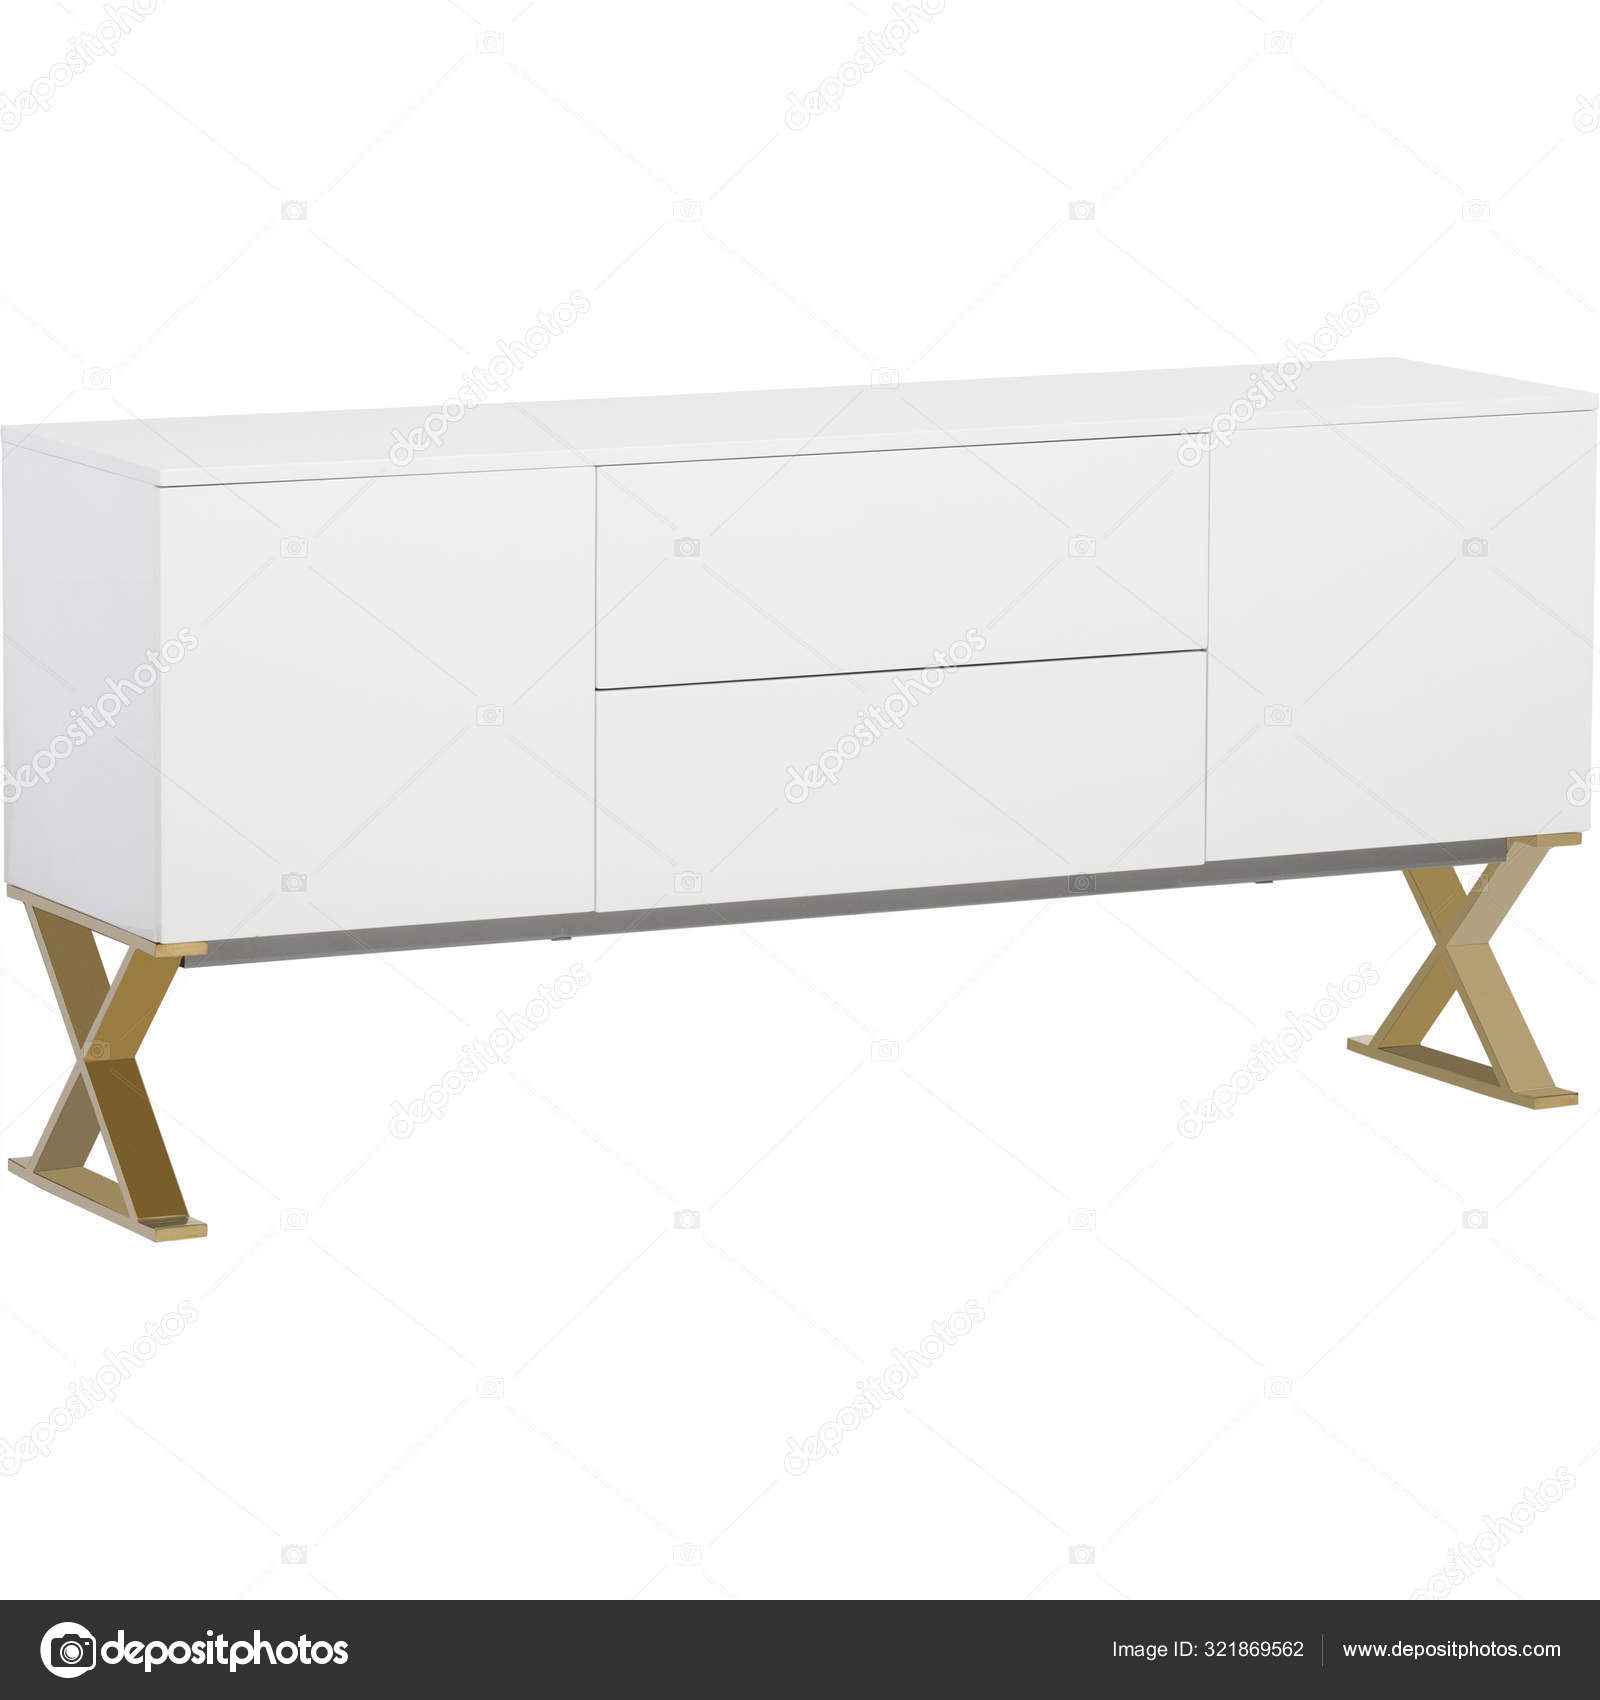 Modern Home Office Furniture Large Sideboard White Sideboard Media Cabinet With White Background Stock Photo C Jassdhiman 321869562